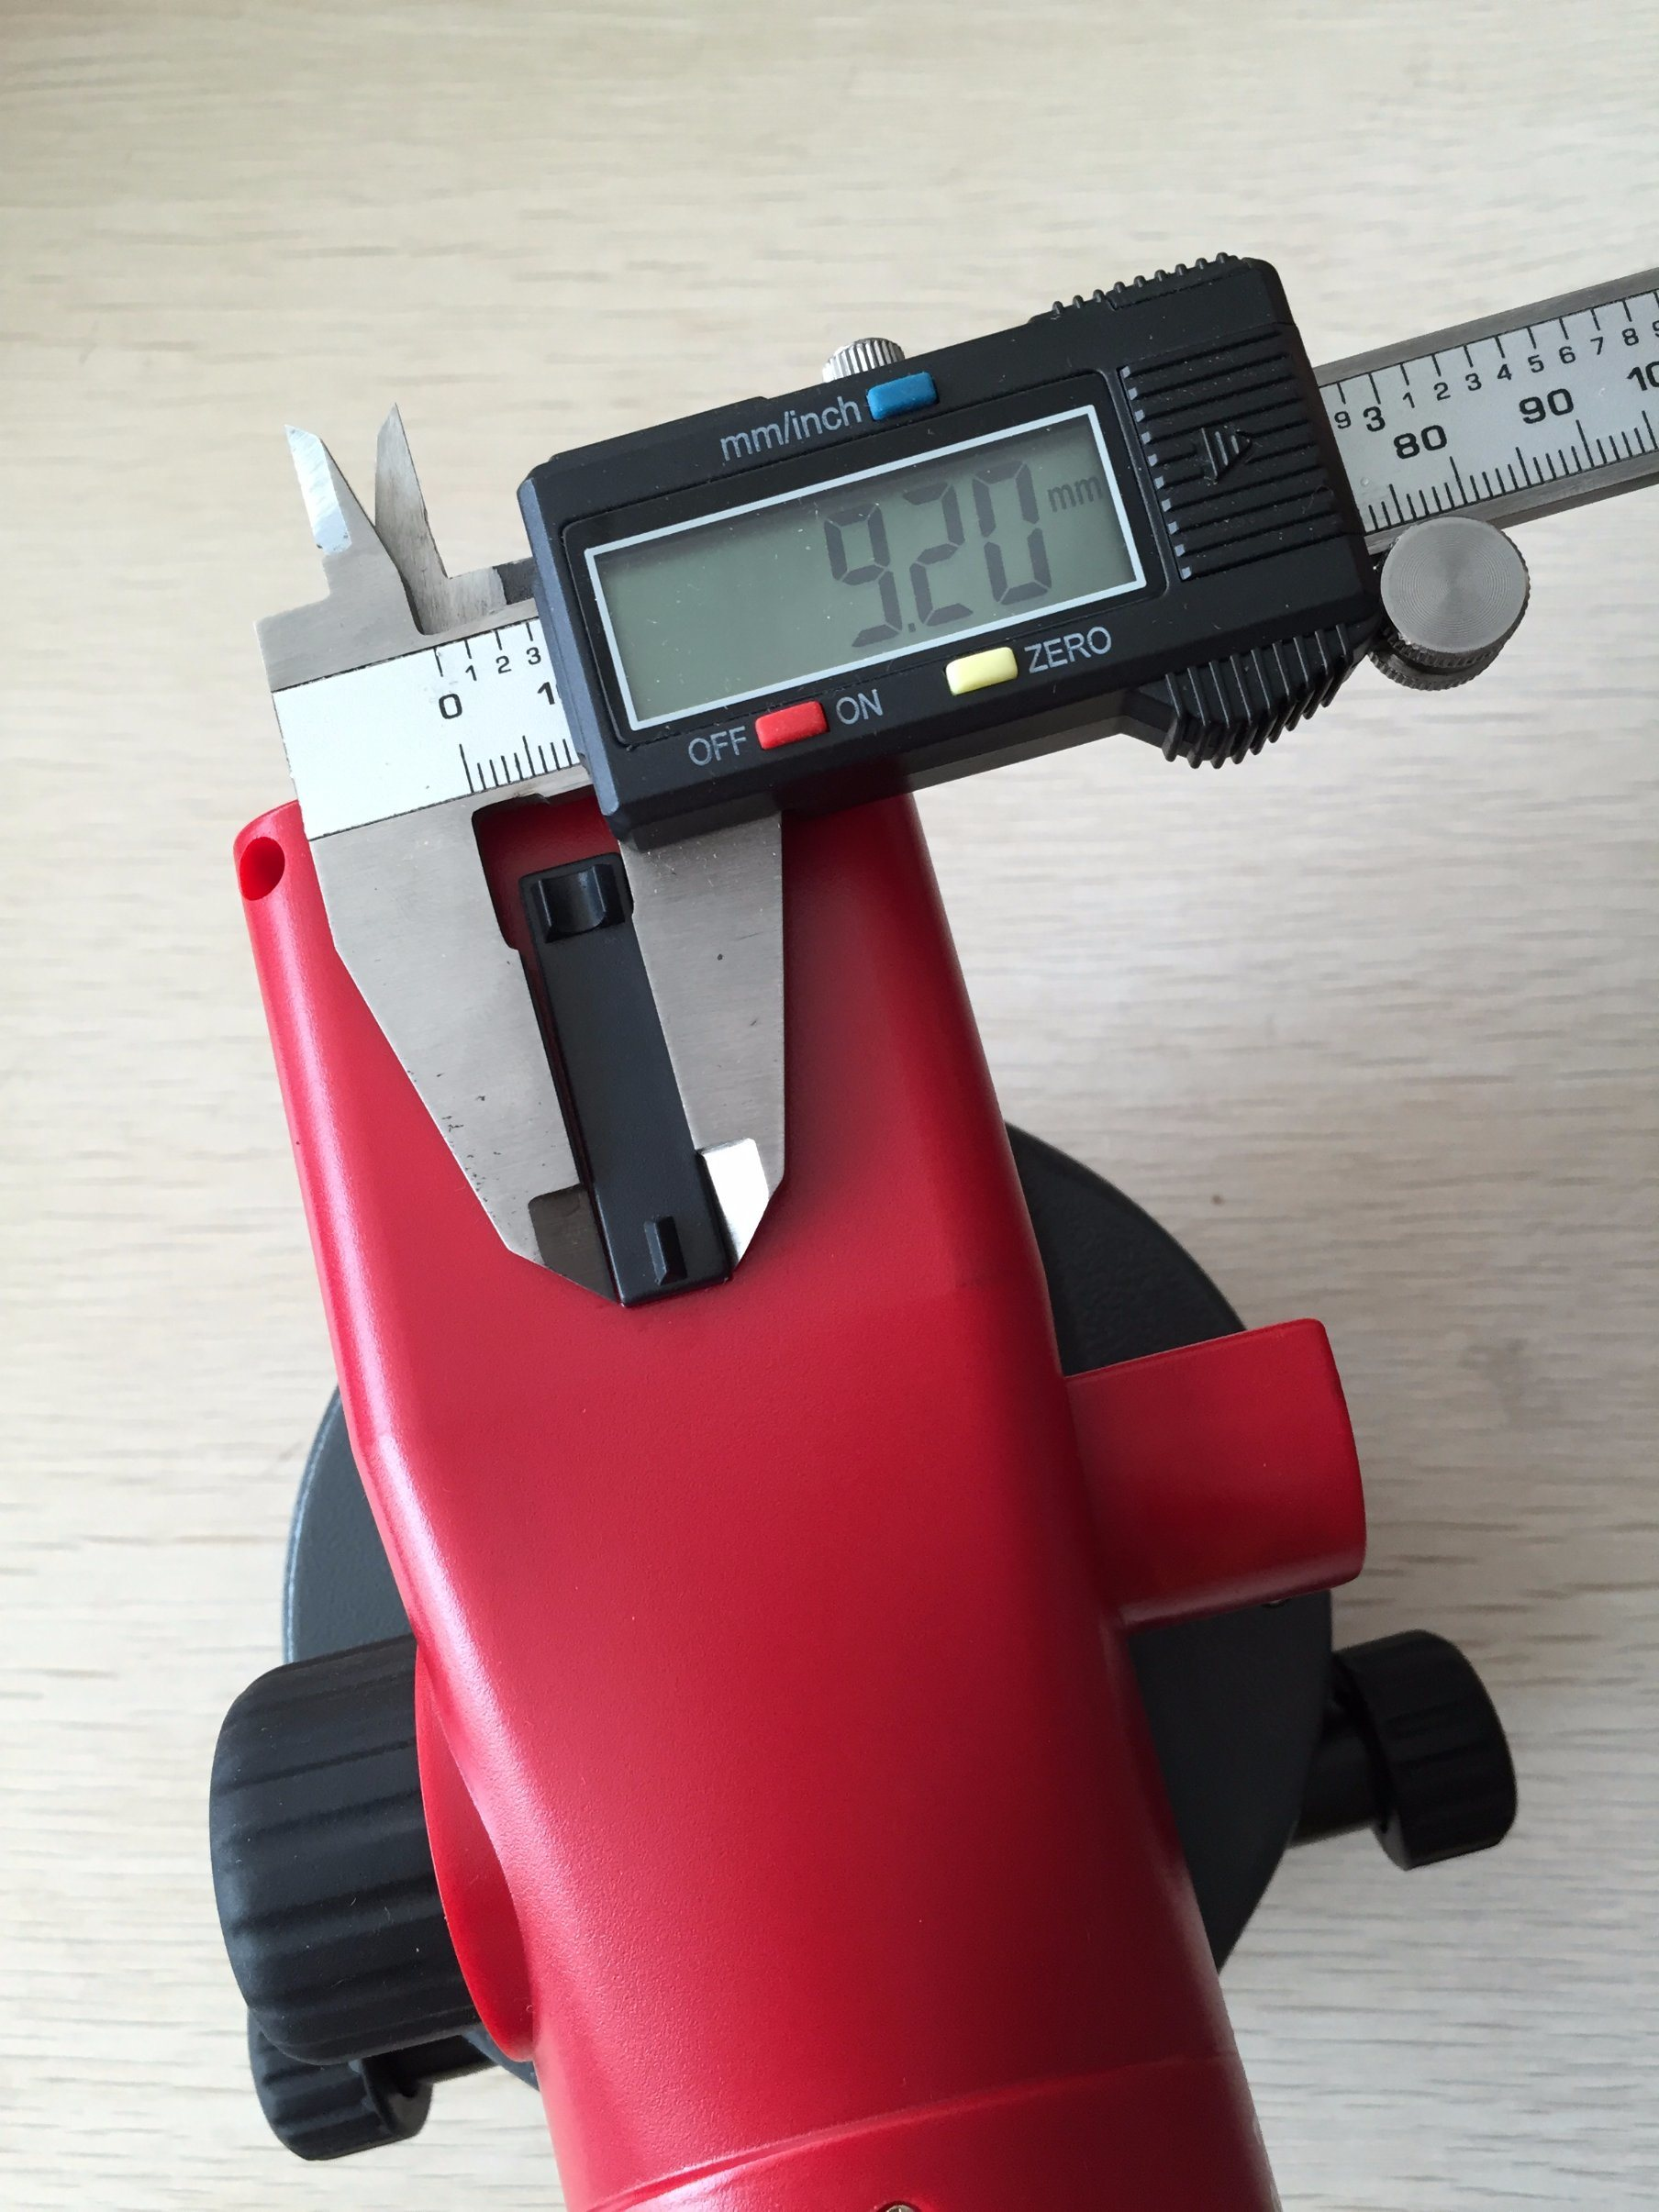 Types of Surveying Instruments 32X Ds-C32 Automatic Level Topograp